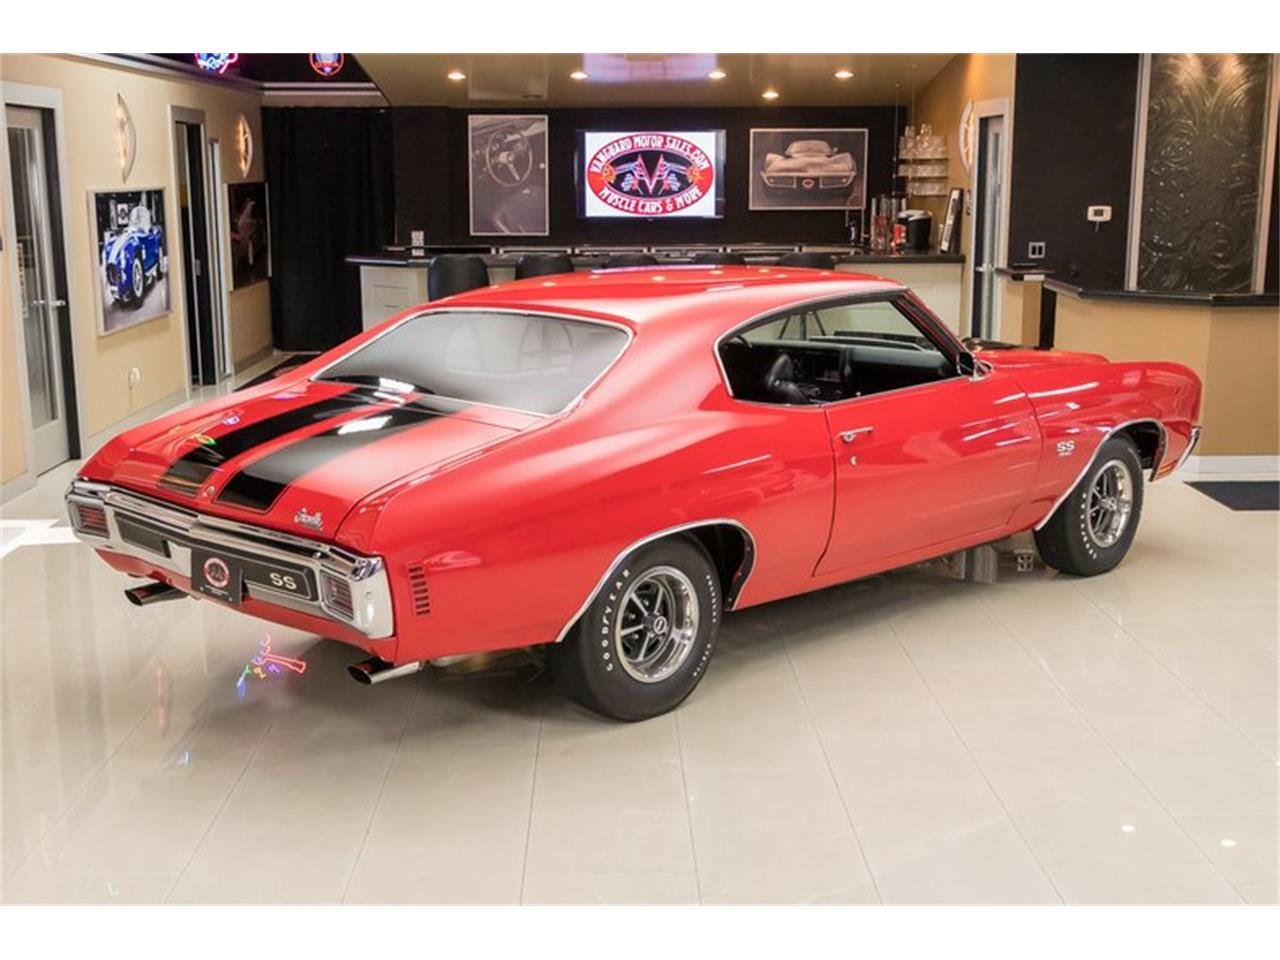 Large Picture of 1970 Chevrolet Chevelle located in Michigan - $69,900.00 Offered by Vanguard Motor Sales - NQ35